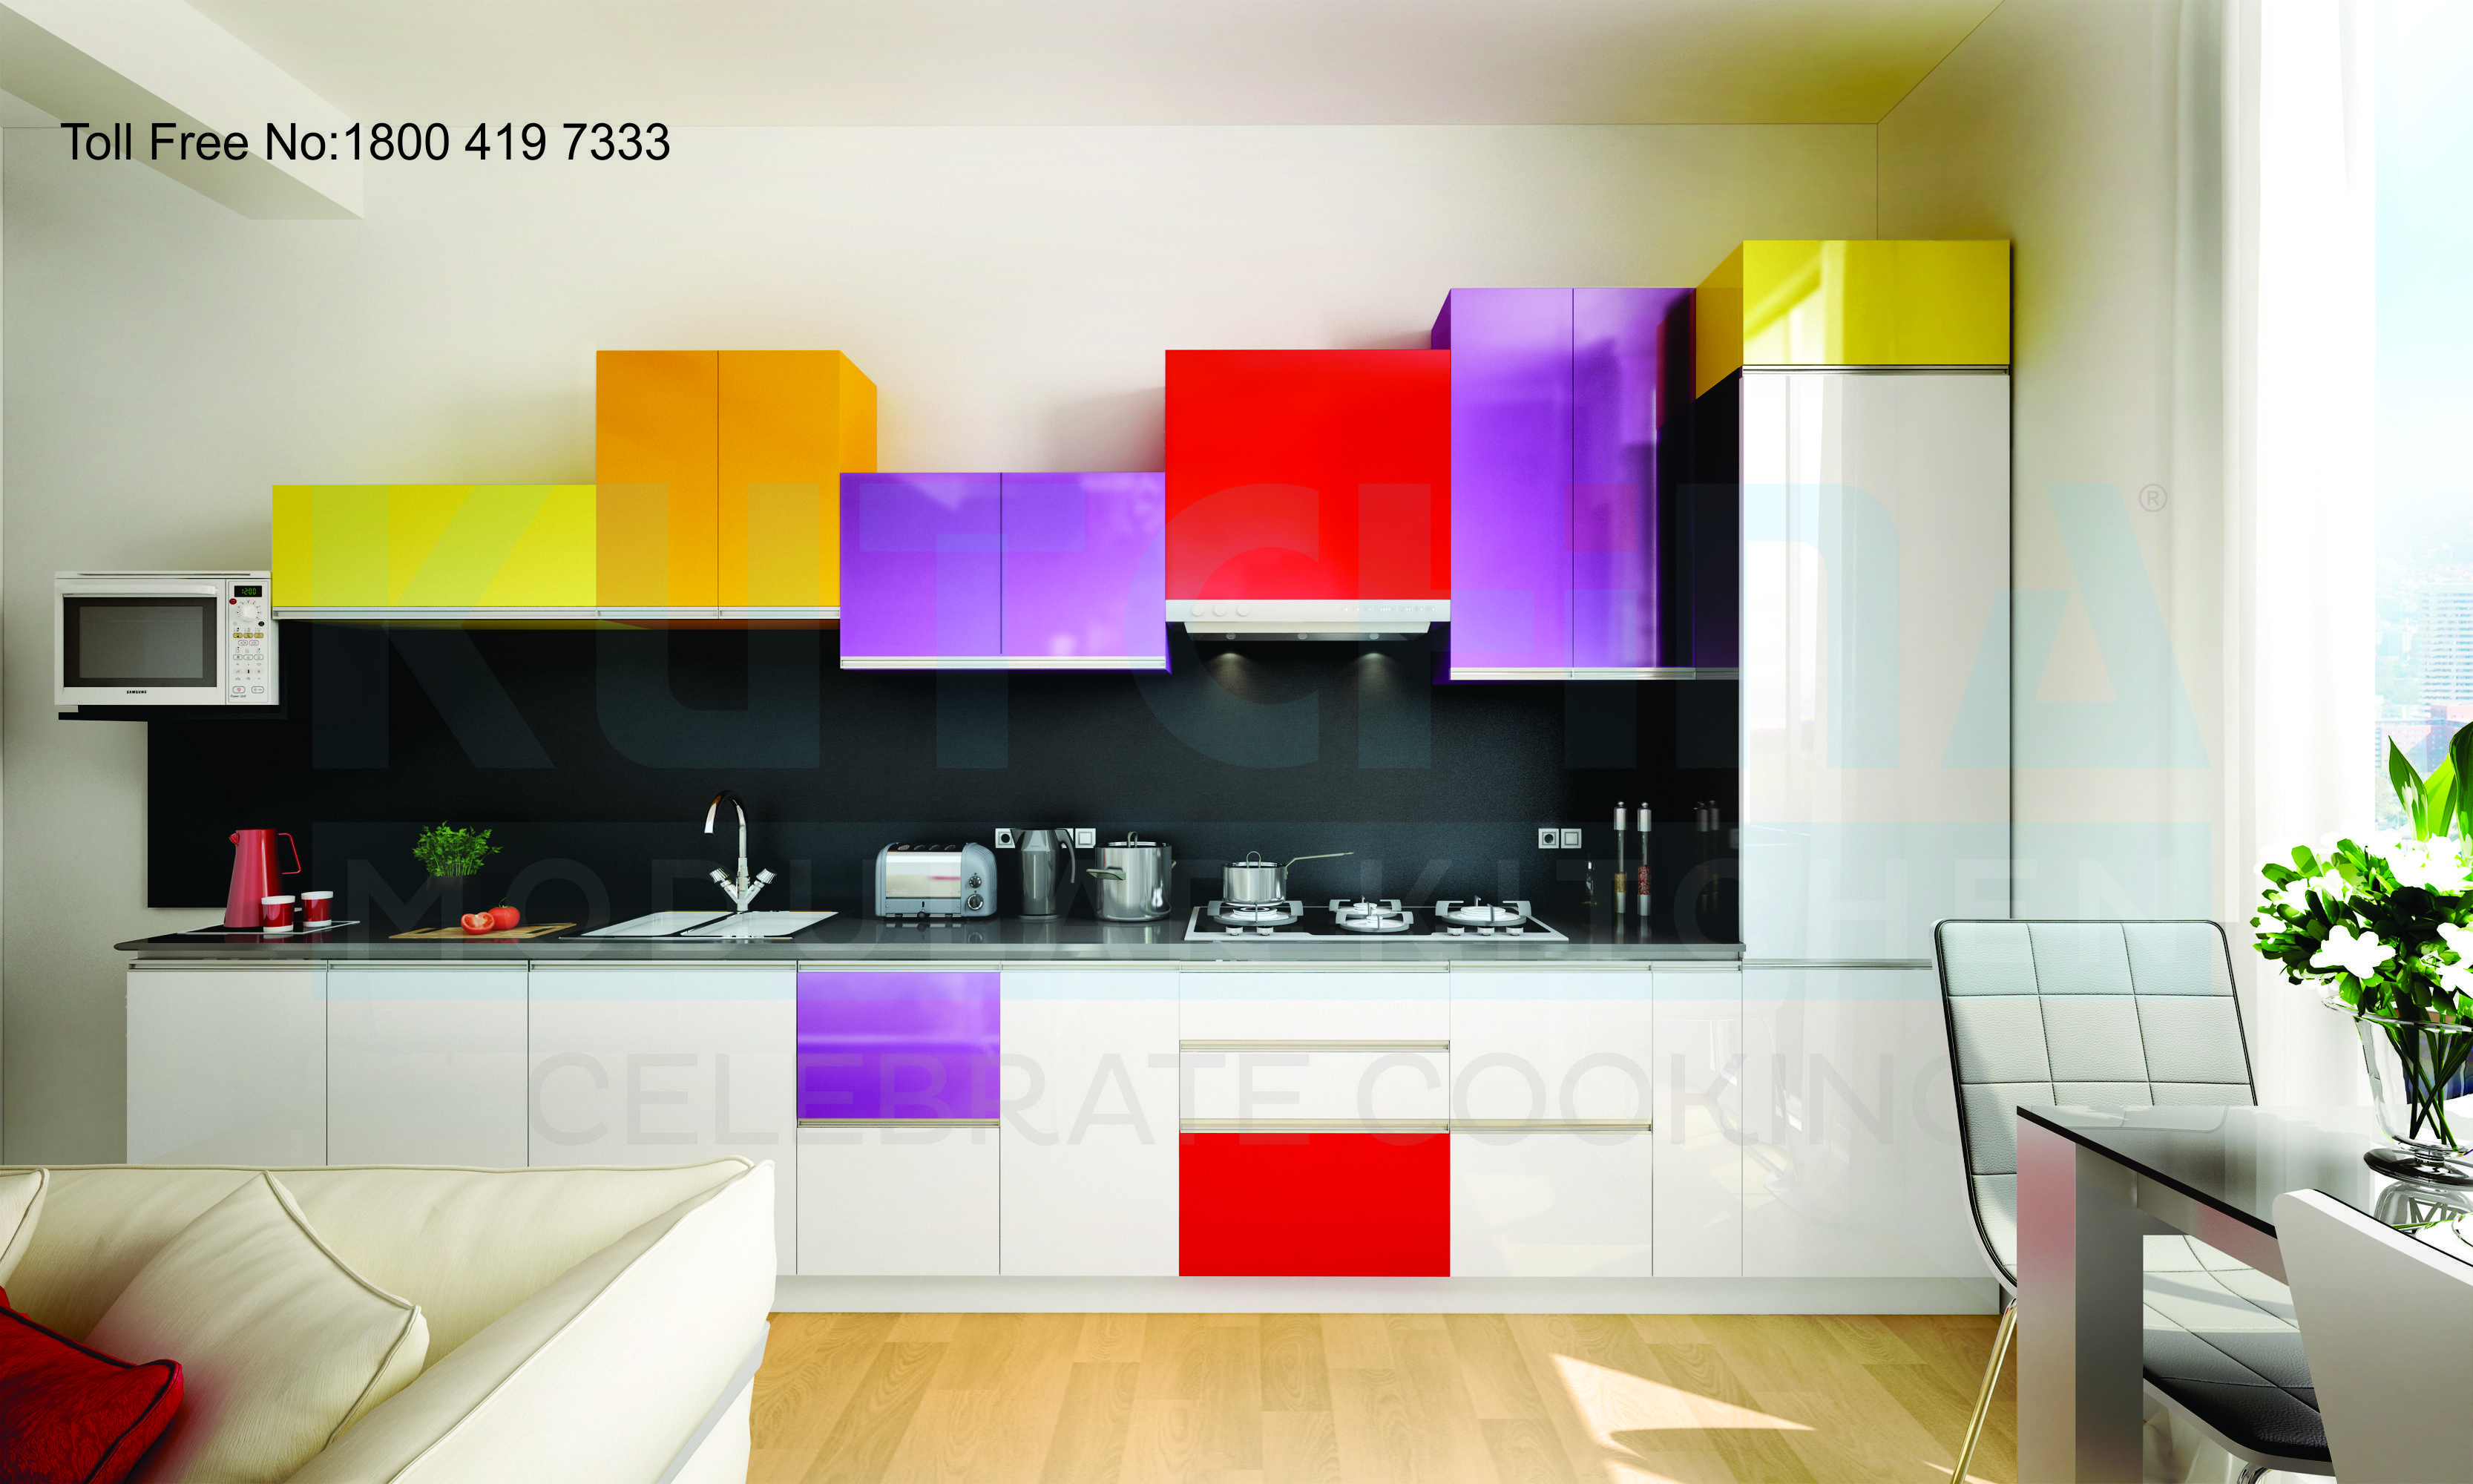 Kutchina Modular Kitchens Comes With Latest Design And Durable Material With 5 Years Warranty And Emi Toll F Kitchen Room Design Kitchen Design Kitchen Models